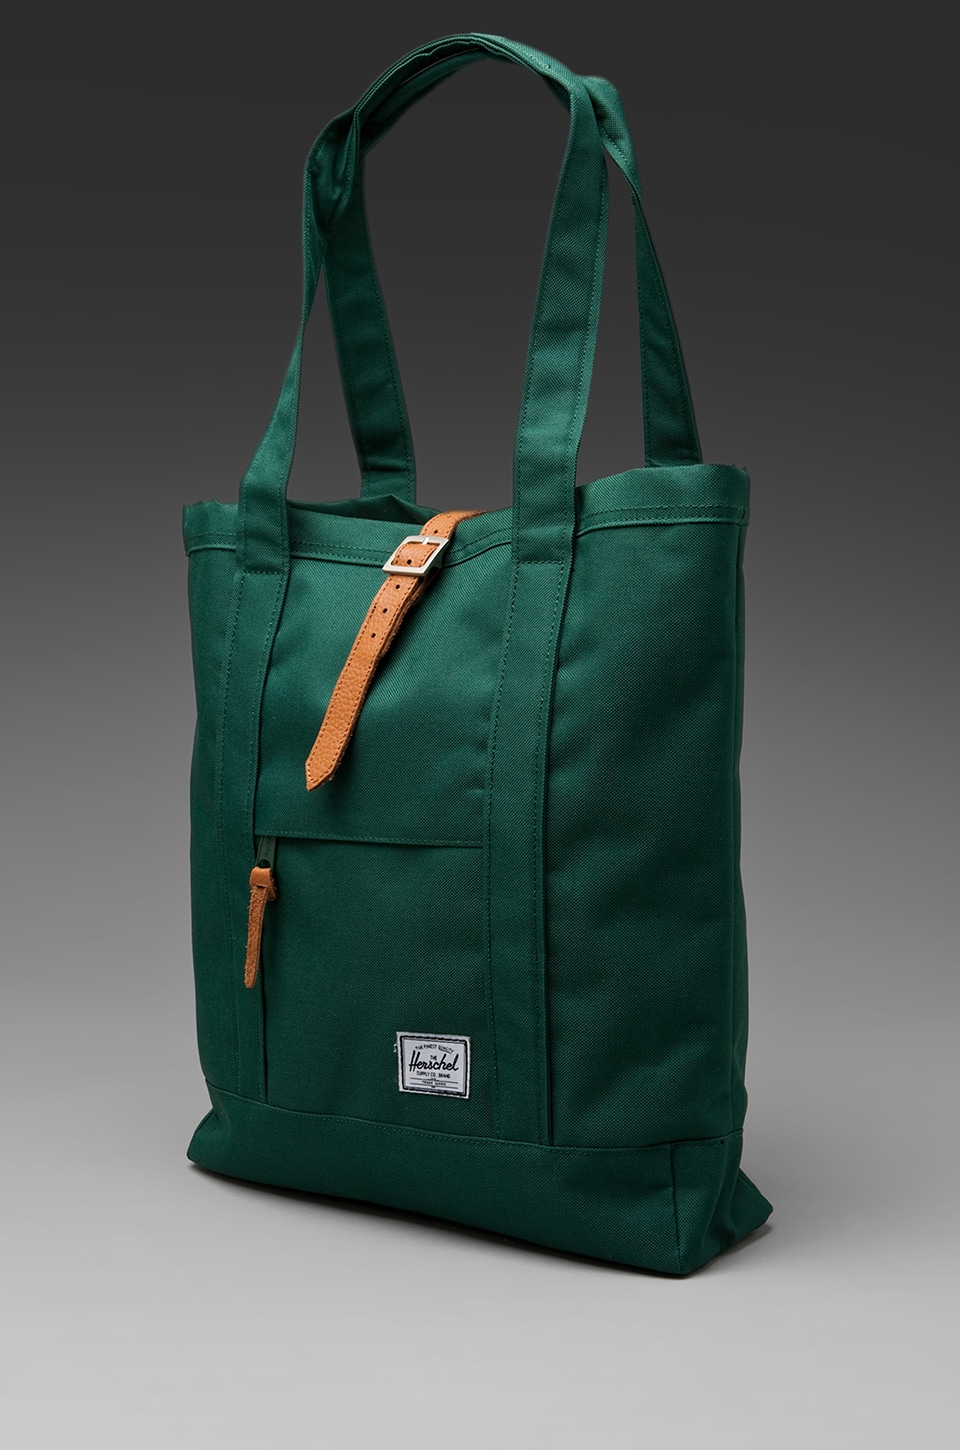 Herschel Supply Co. Market Bag in Moss